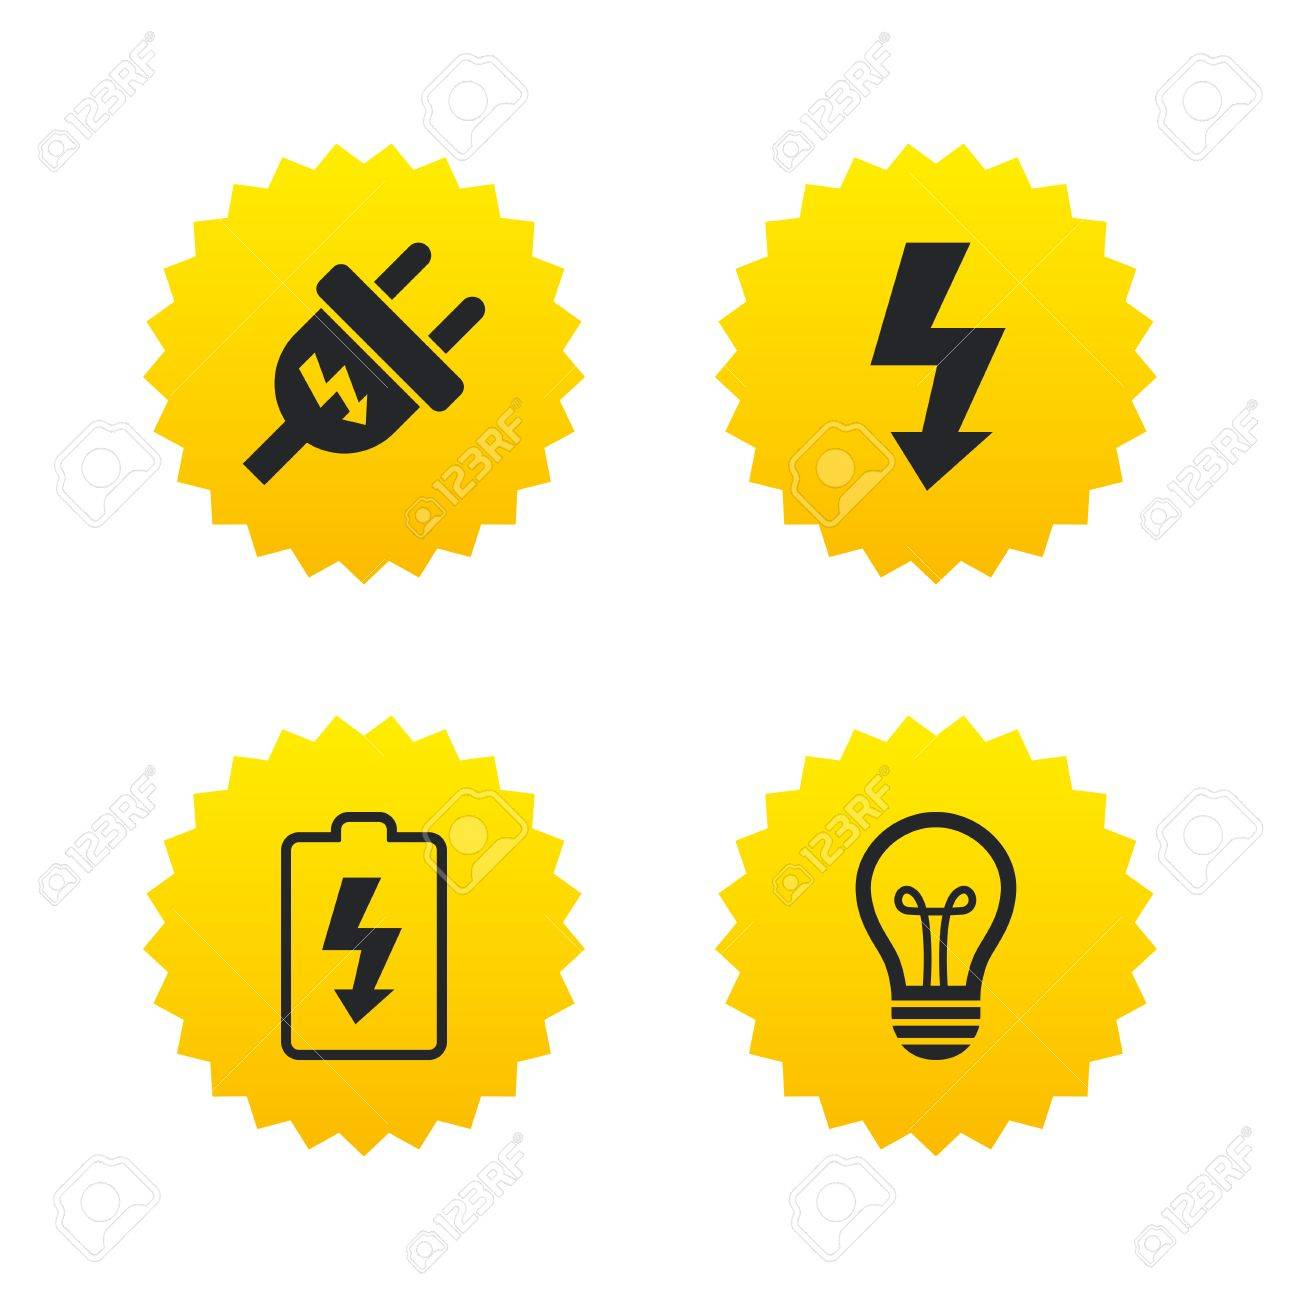 Best electric signs and symbols gallery electrical and wiring lamp bulb and battery symbols low electricity biocorpaavc Choice Image